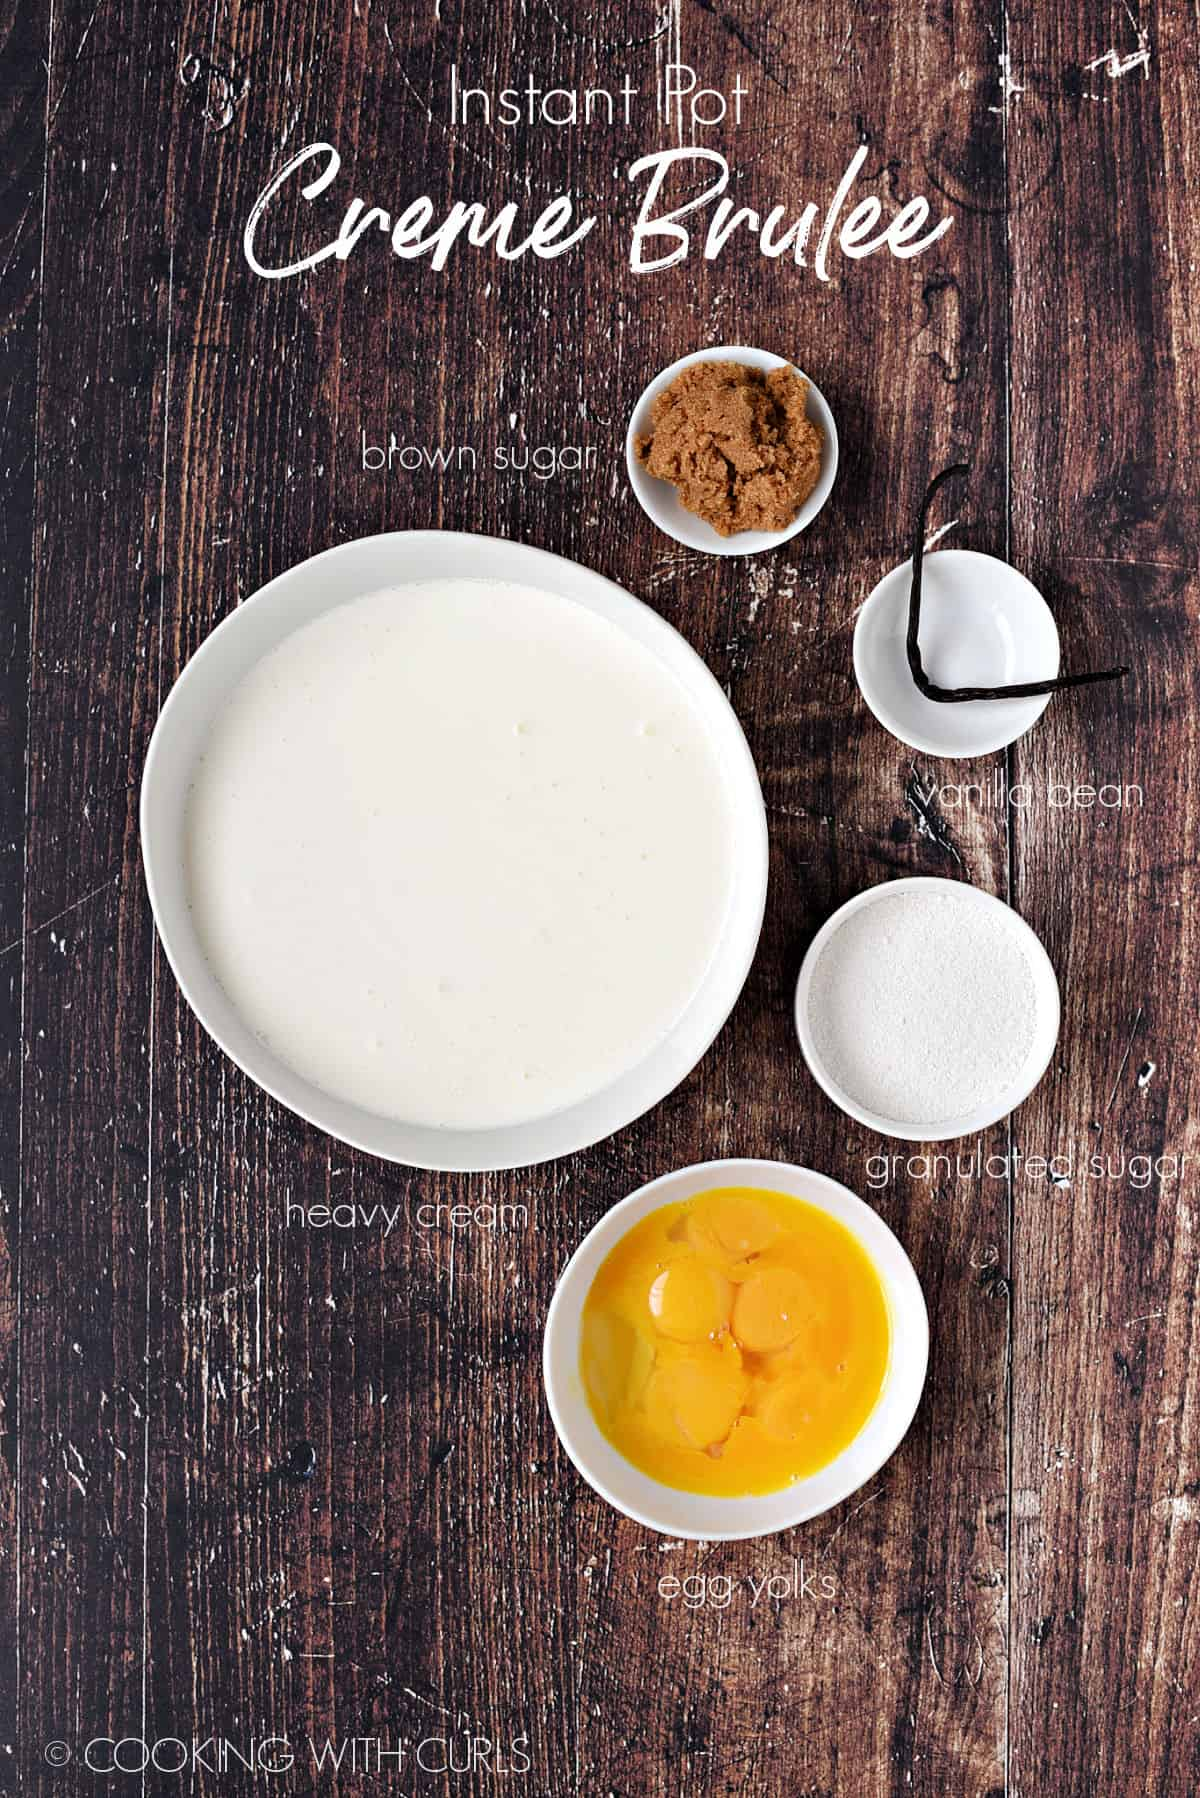 Ingredients to make Instant Pot Creme Brulee in white bowls.